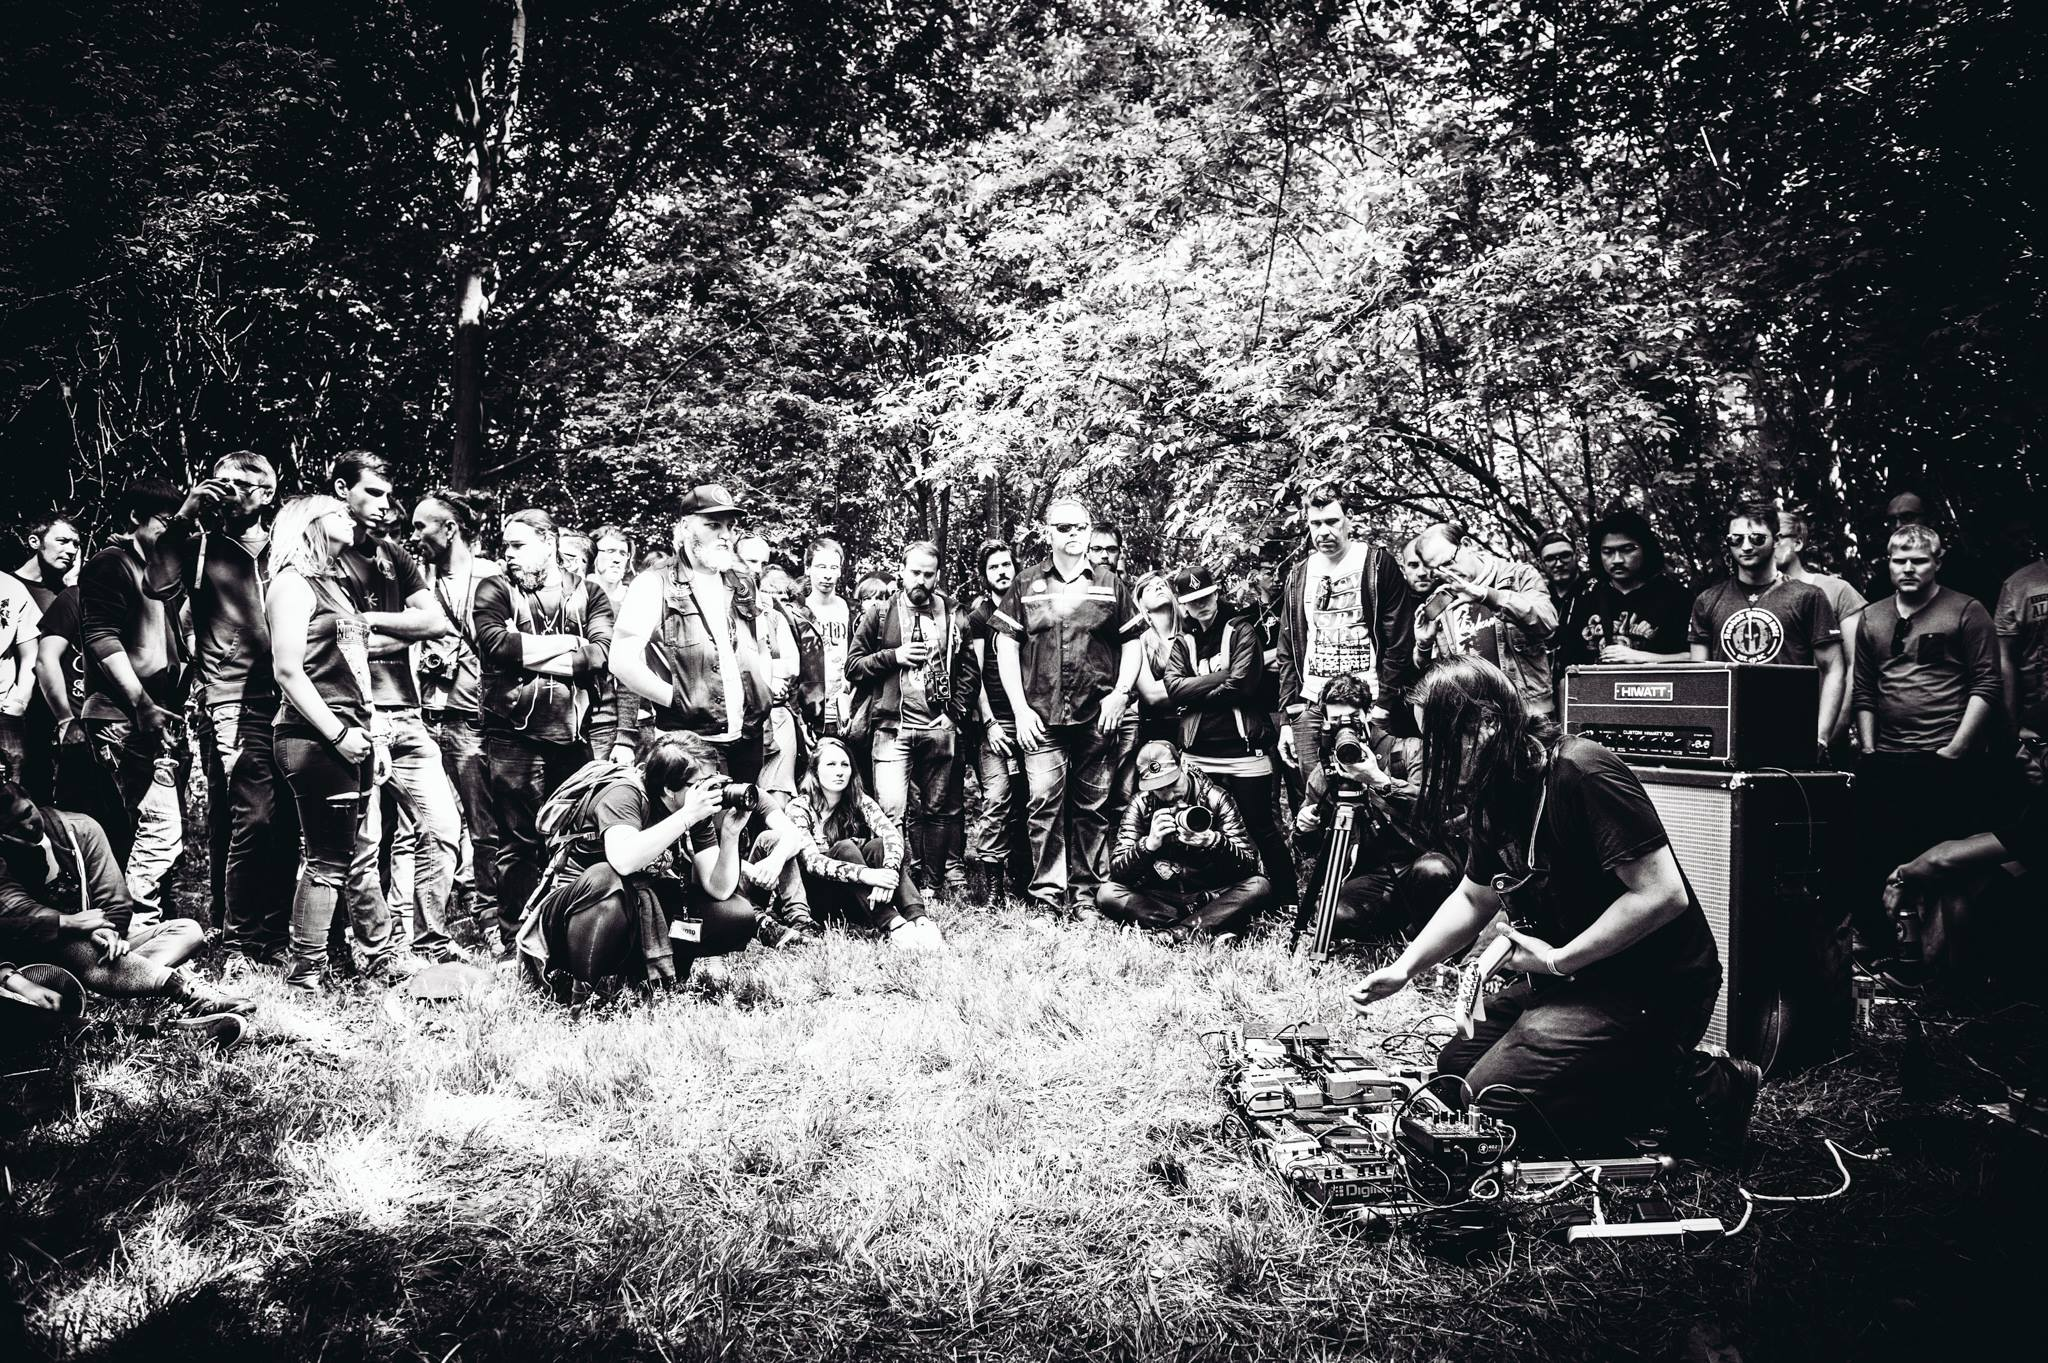 Thisquietarmy performing in the forest at #dnk15, picture by Davy De Pauw